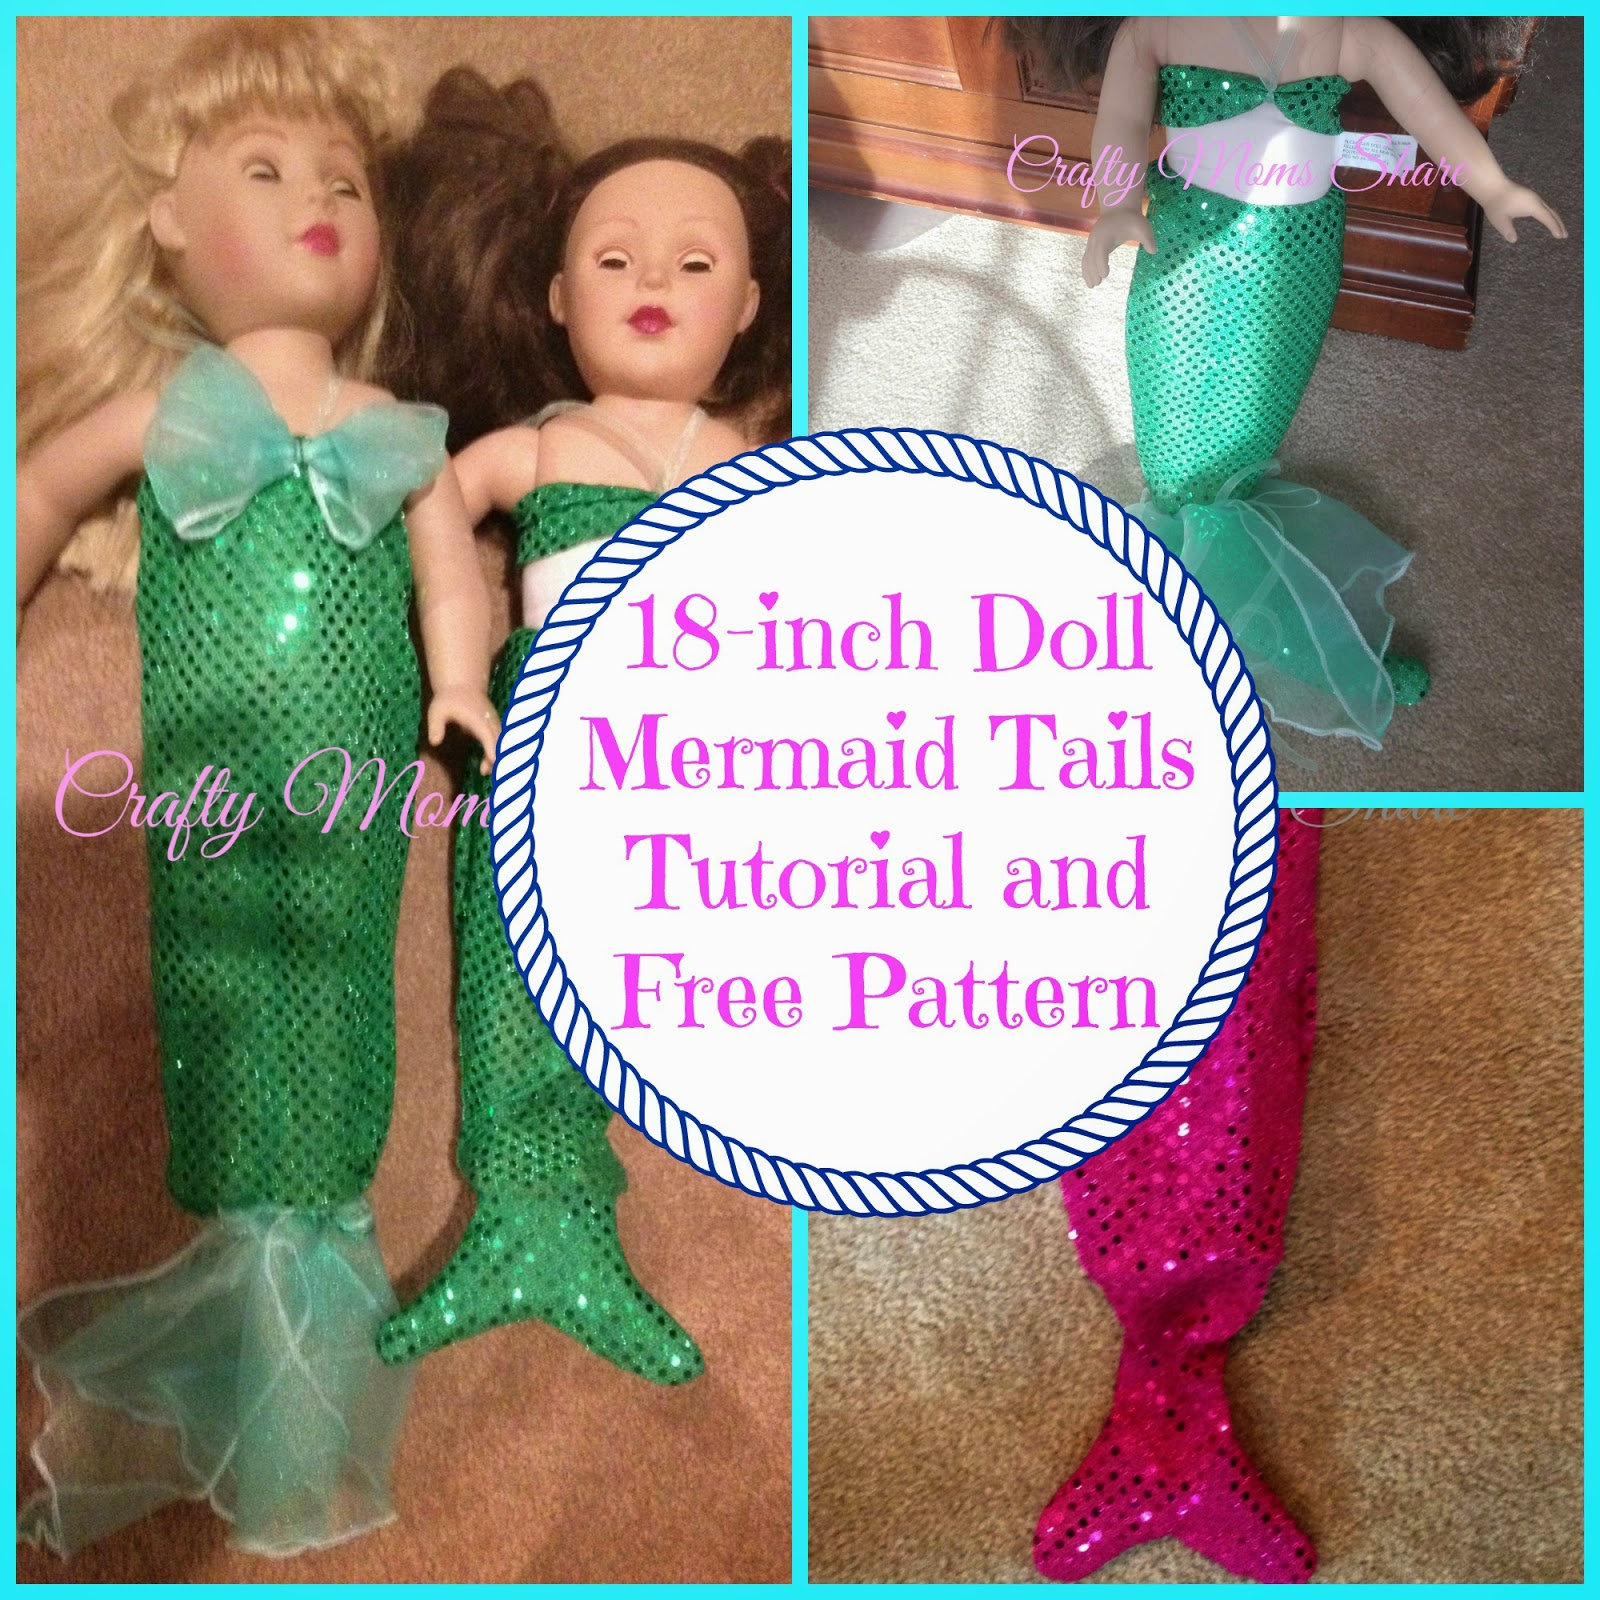 Crafty Moms Share Diy Mermaid Tail For An 18 Inch Doll With Free